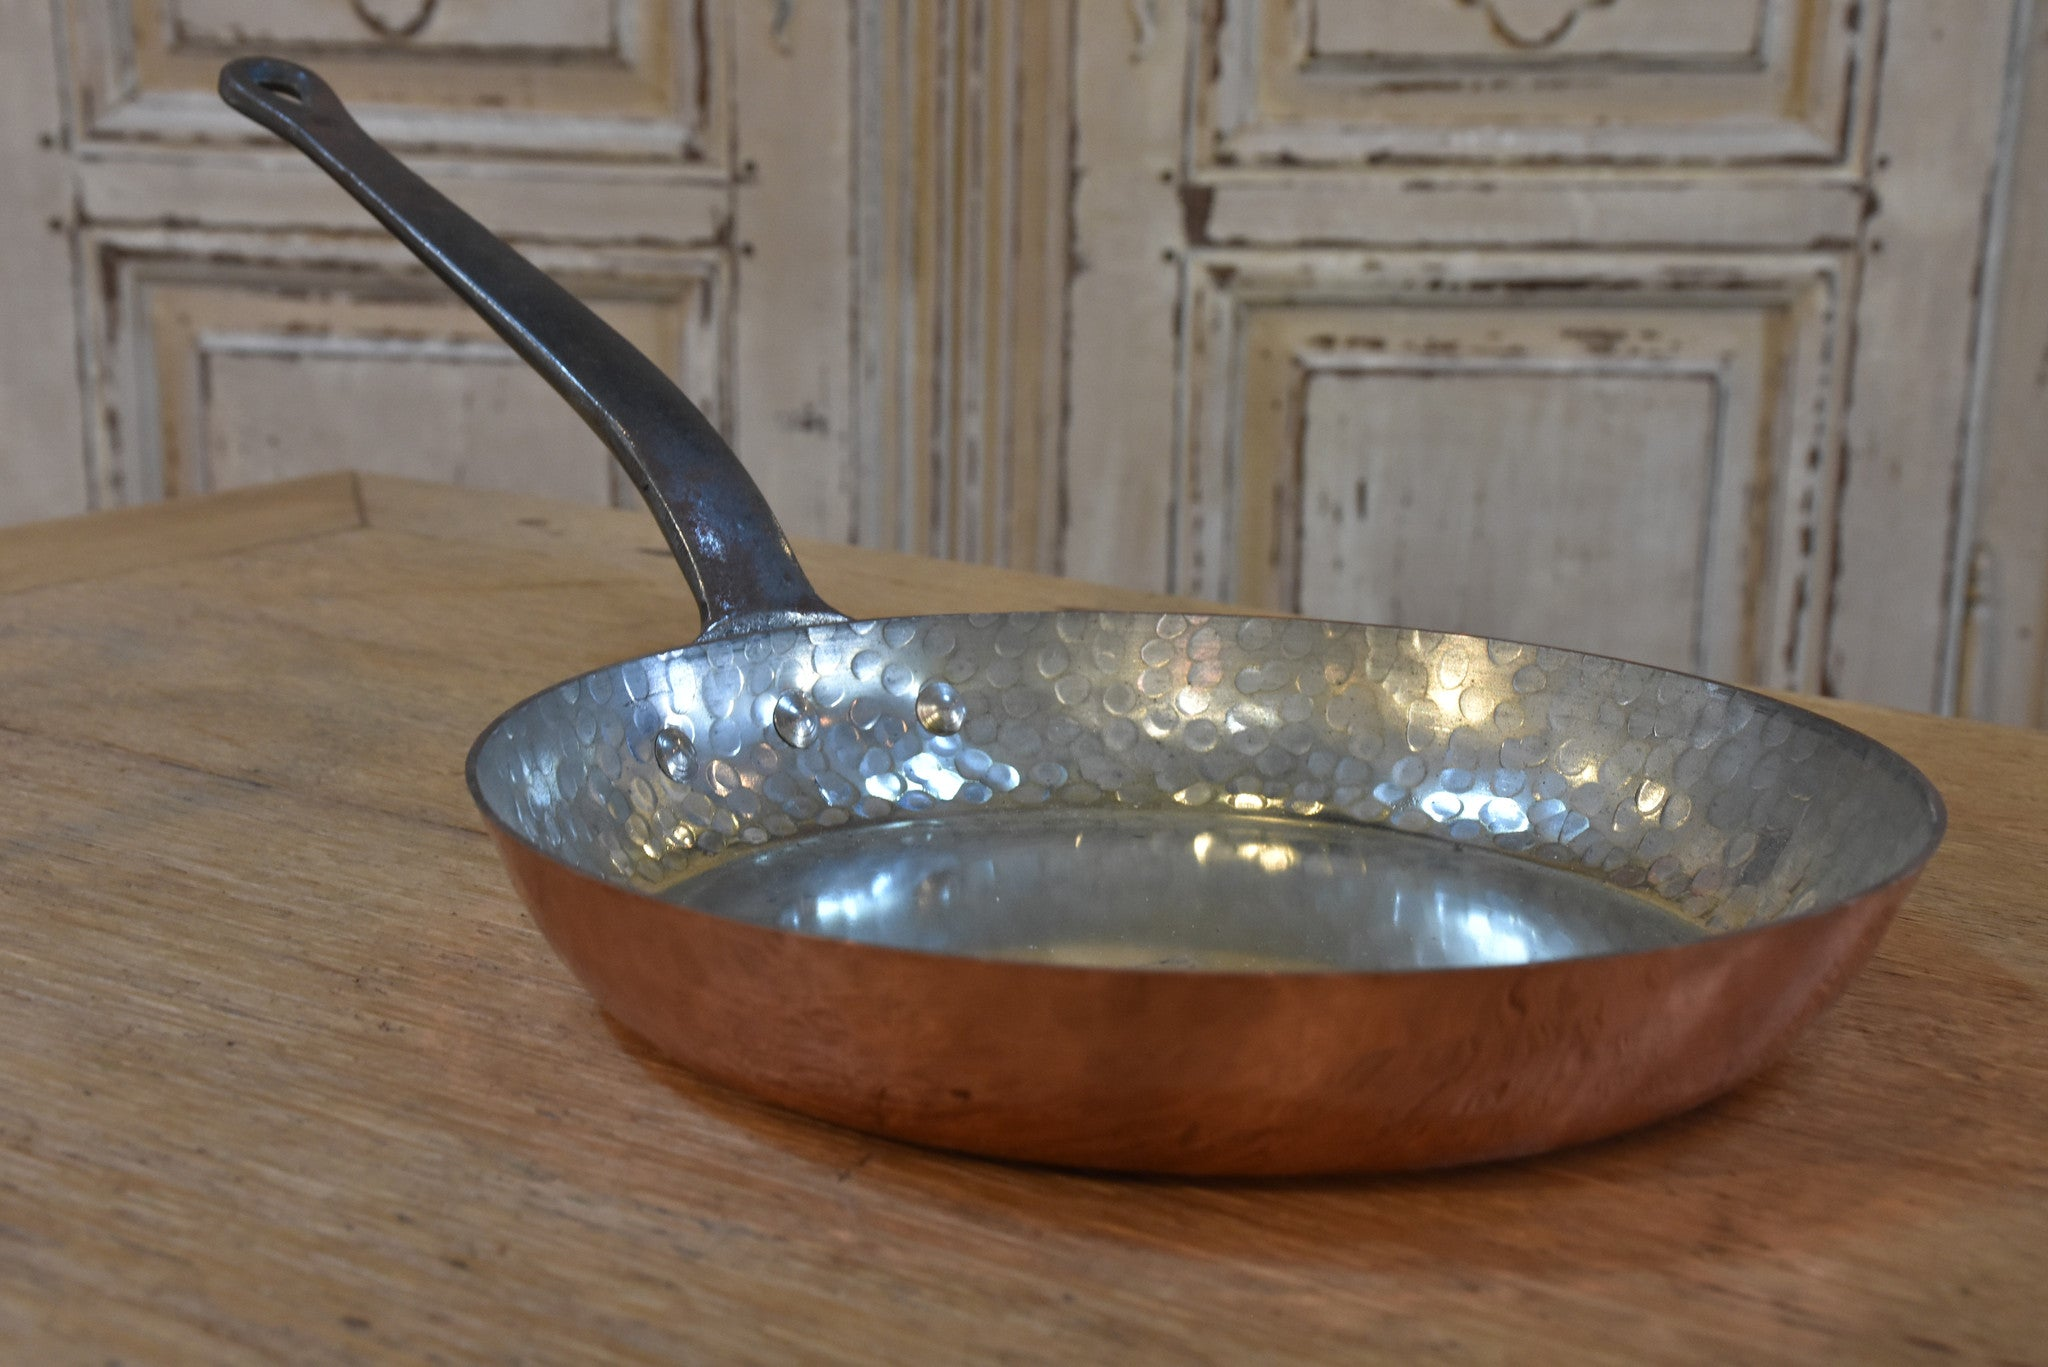 Set of French copper saucepans and frypans - 7 pieces